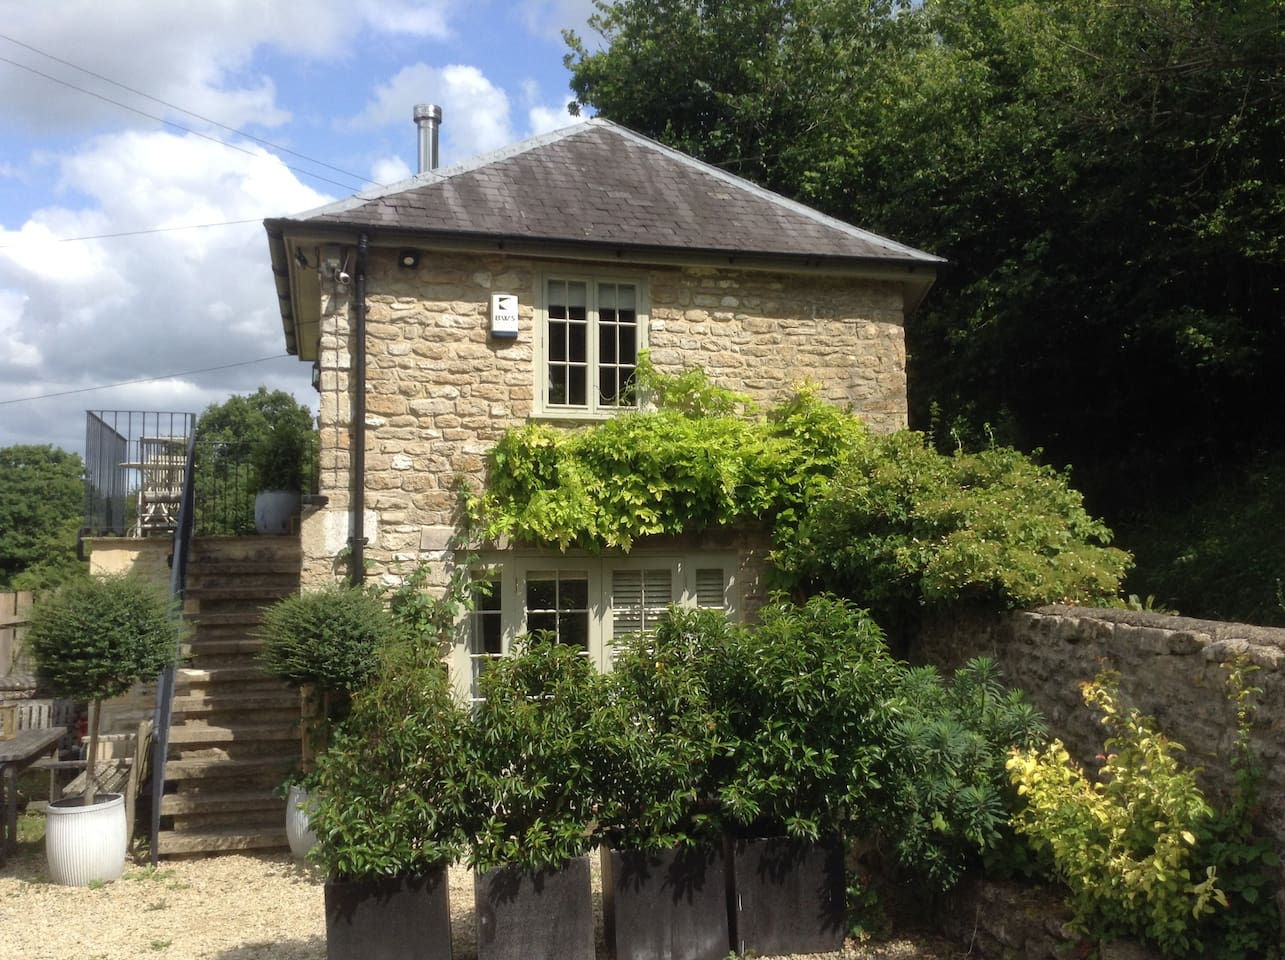 The Lodge, St Catherine - wisteria and scented roses clamber up the stonework.